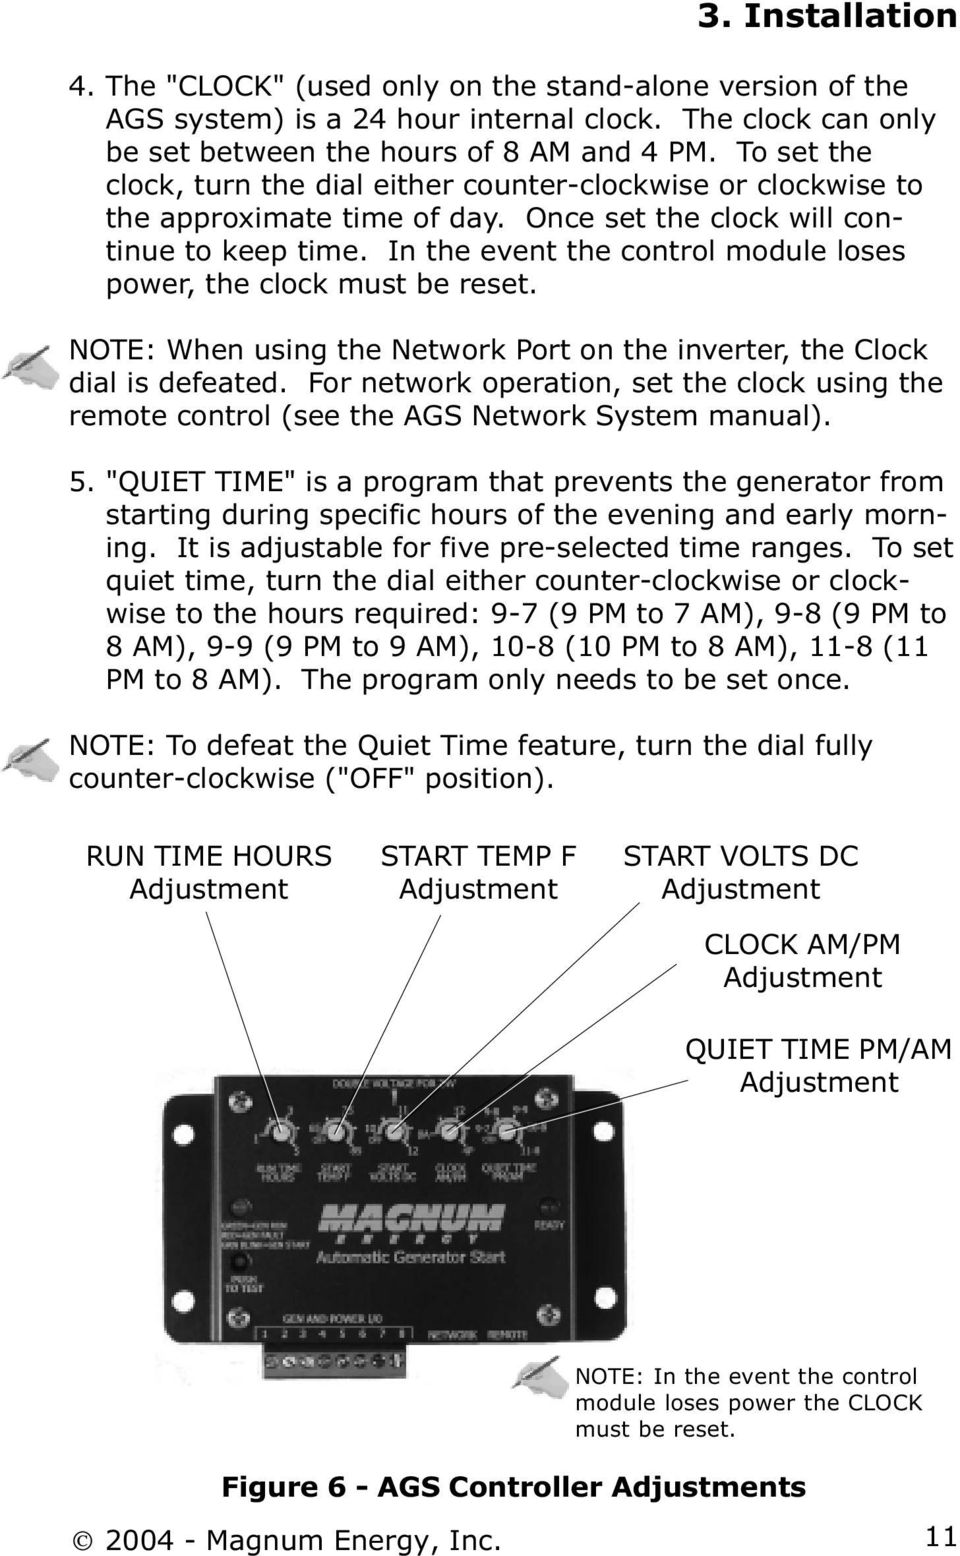 In the event the control module loses power, the clock must be reset. NOTE: When using the Network Port on the inverter, the Clock dial is defeated.